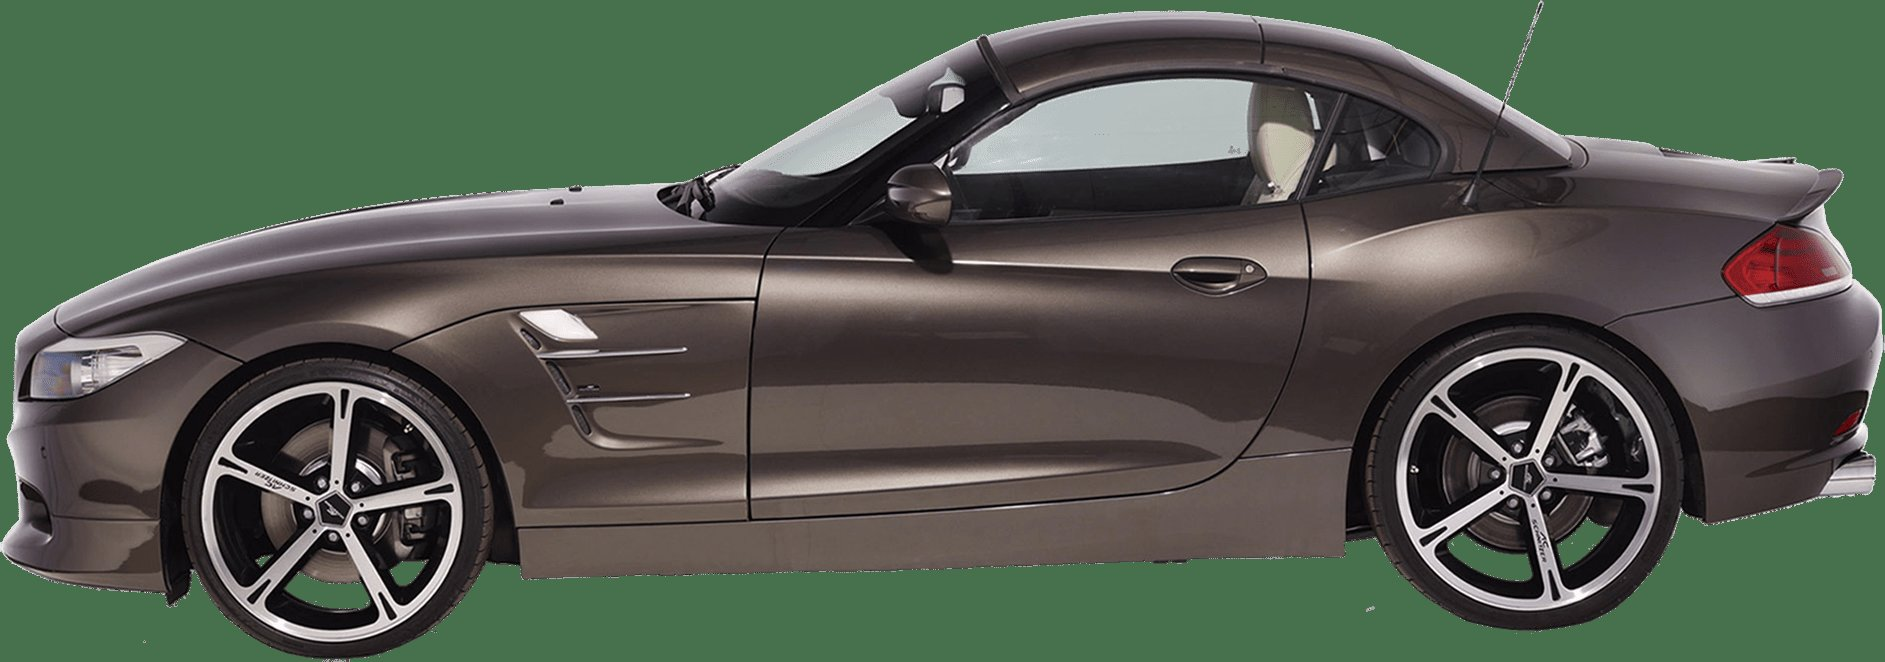 Latest Bmw Z4 Png Image Free Download